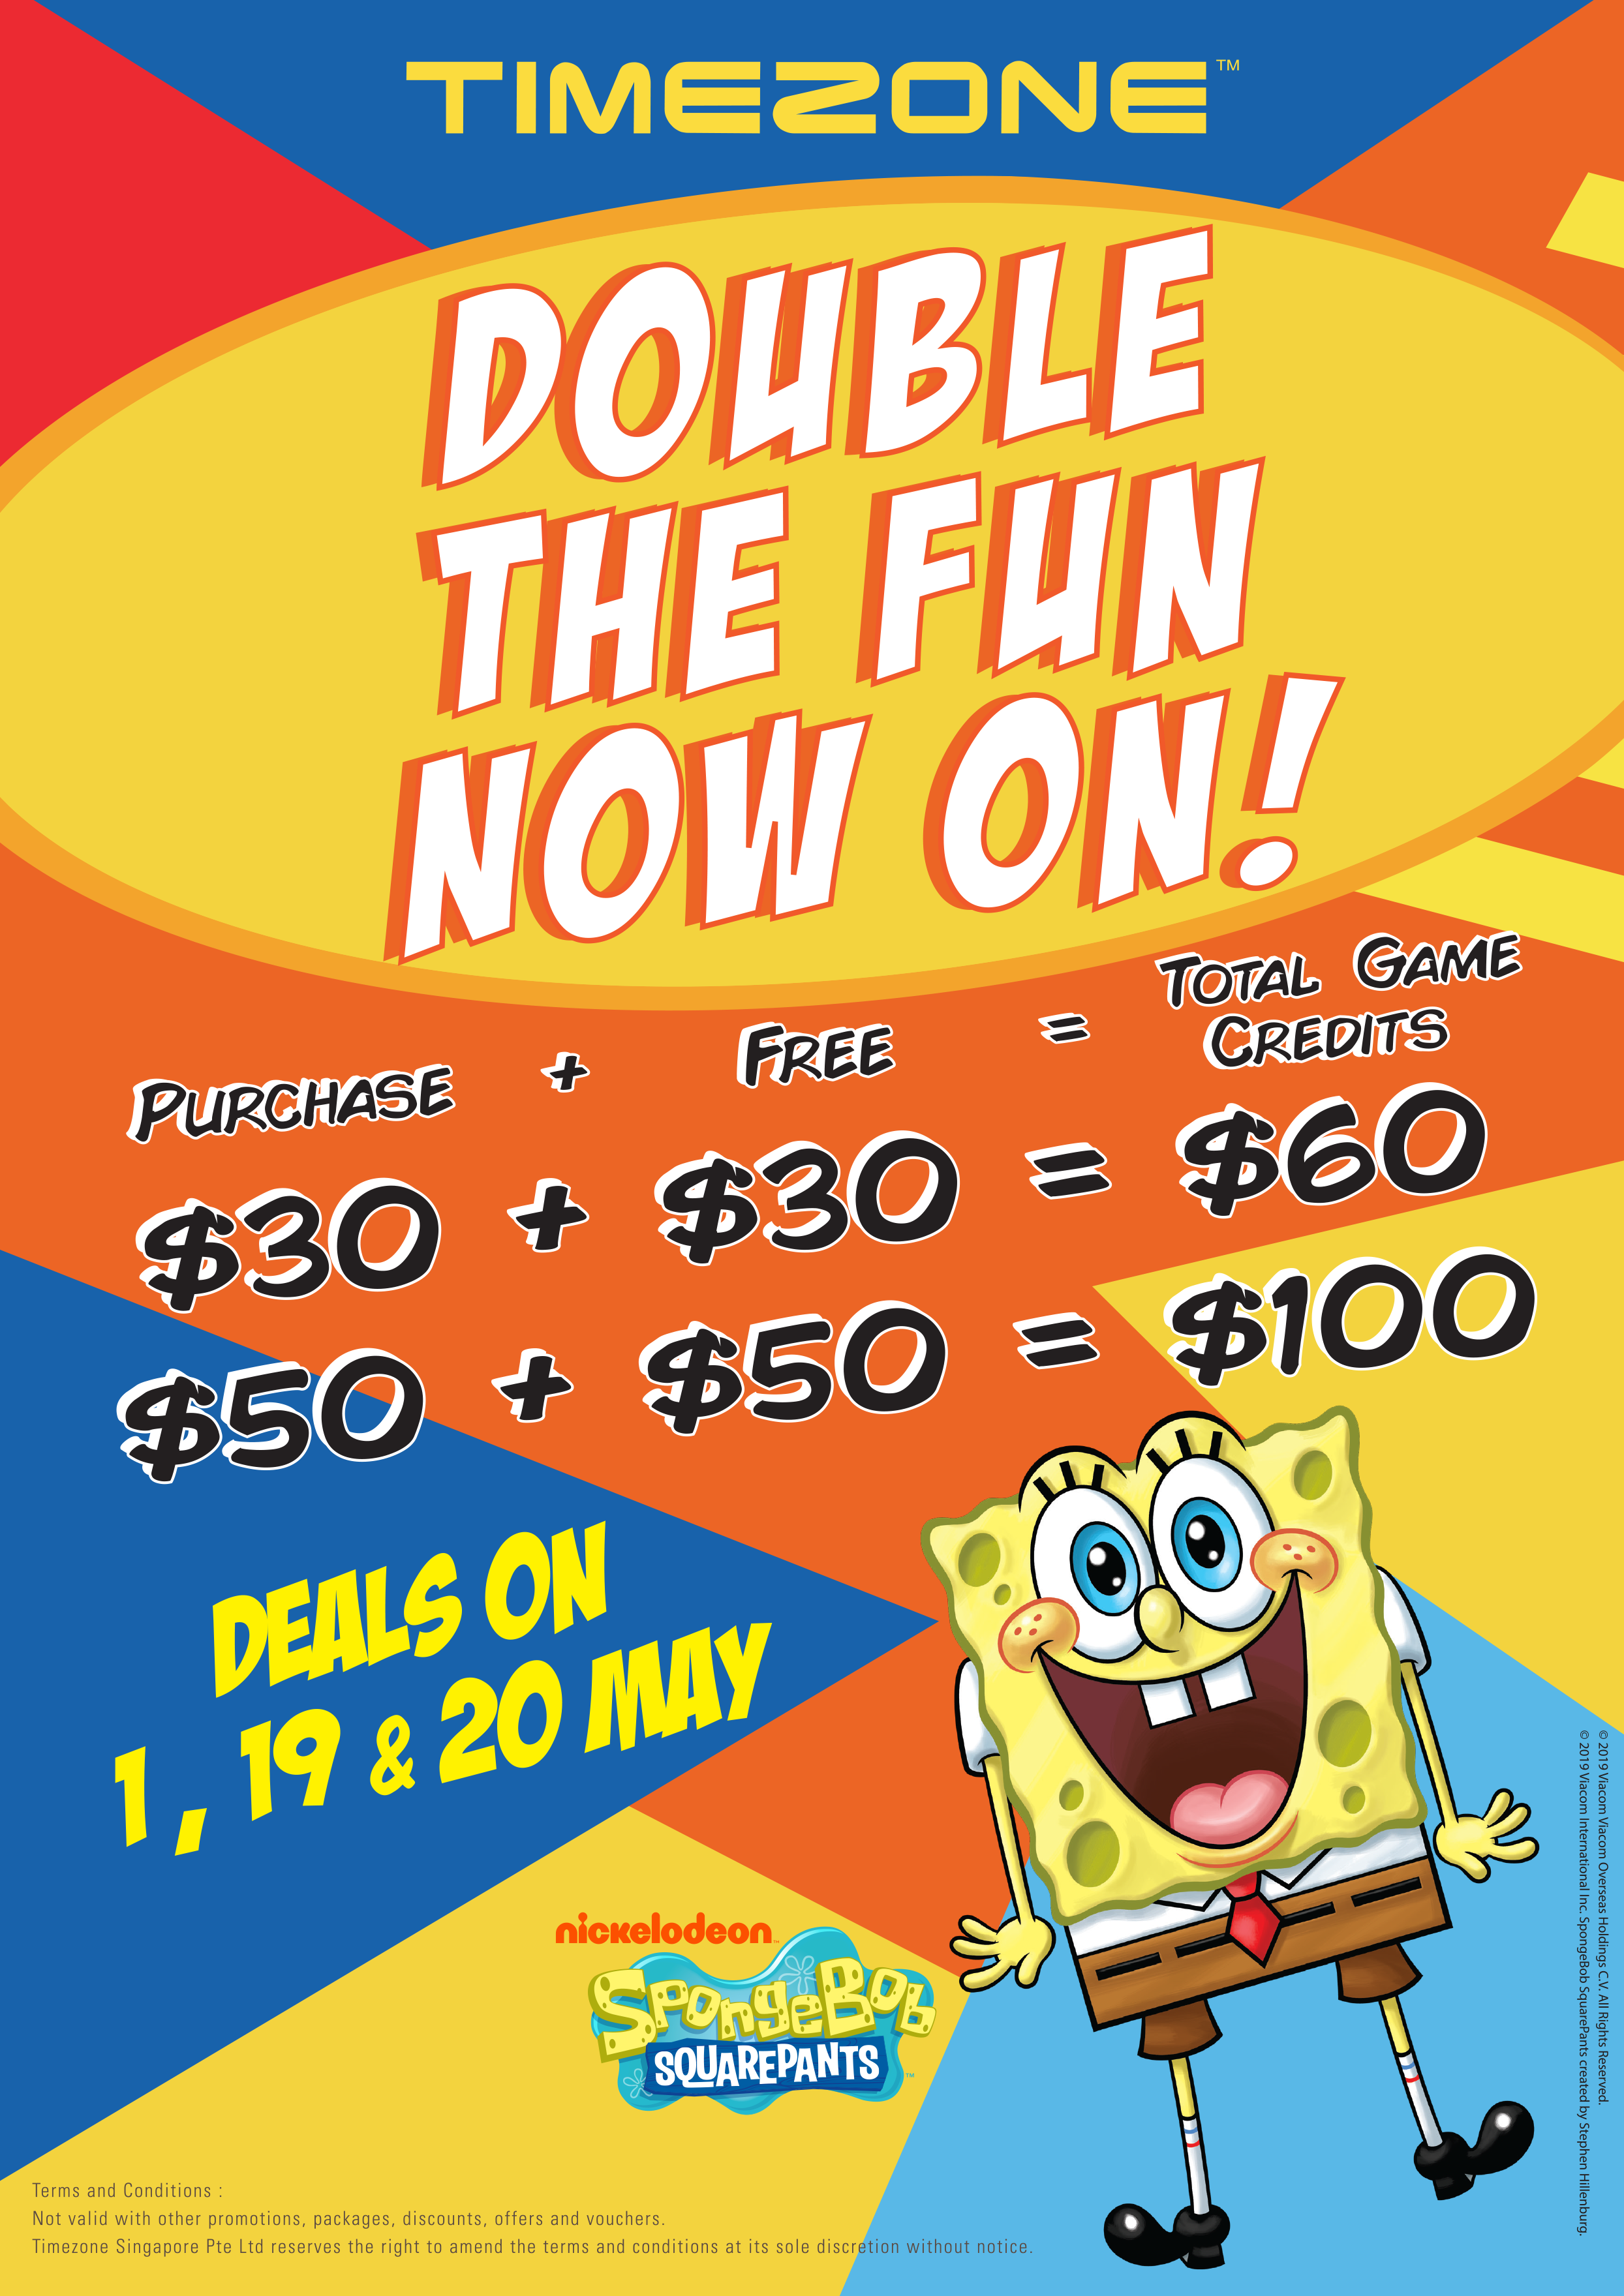 Timezone $30-for-$30 deal means an extra 'life' for your games on 19 & 20 May